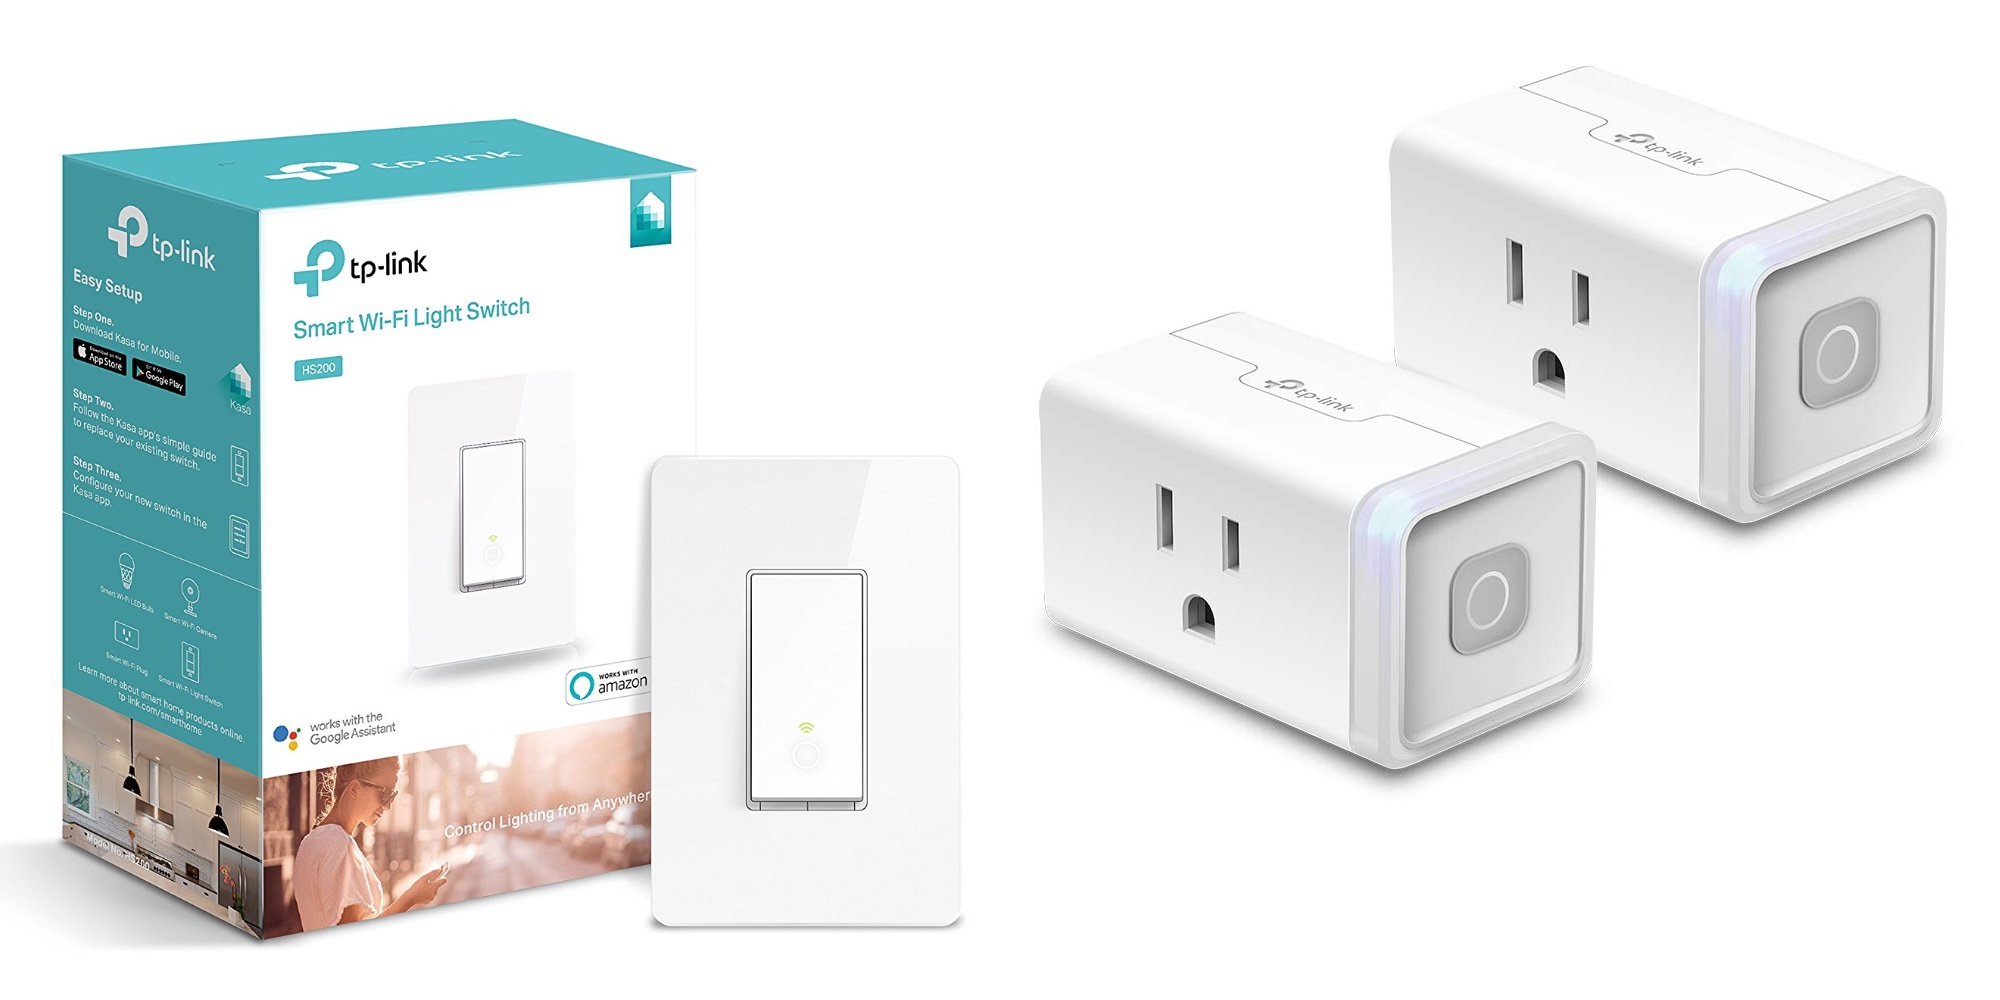 Expand your smart home with two TP-Link Plugs for $23 or two Light Switches for $40 (Save up to 35%)